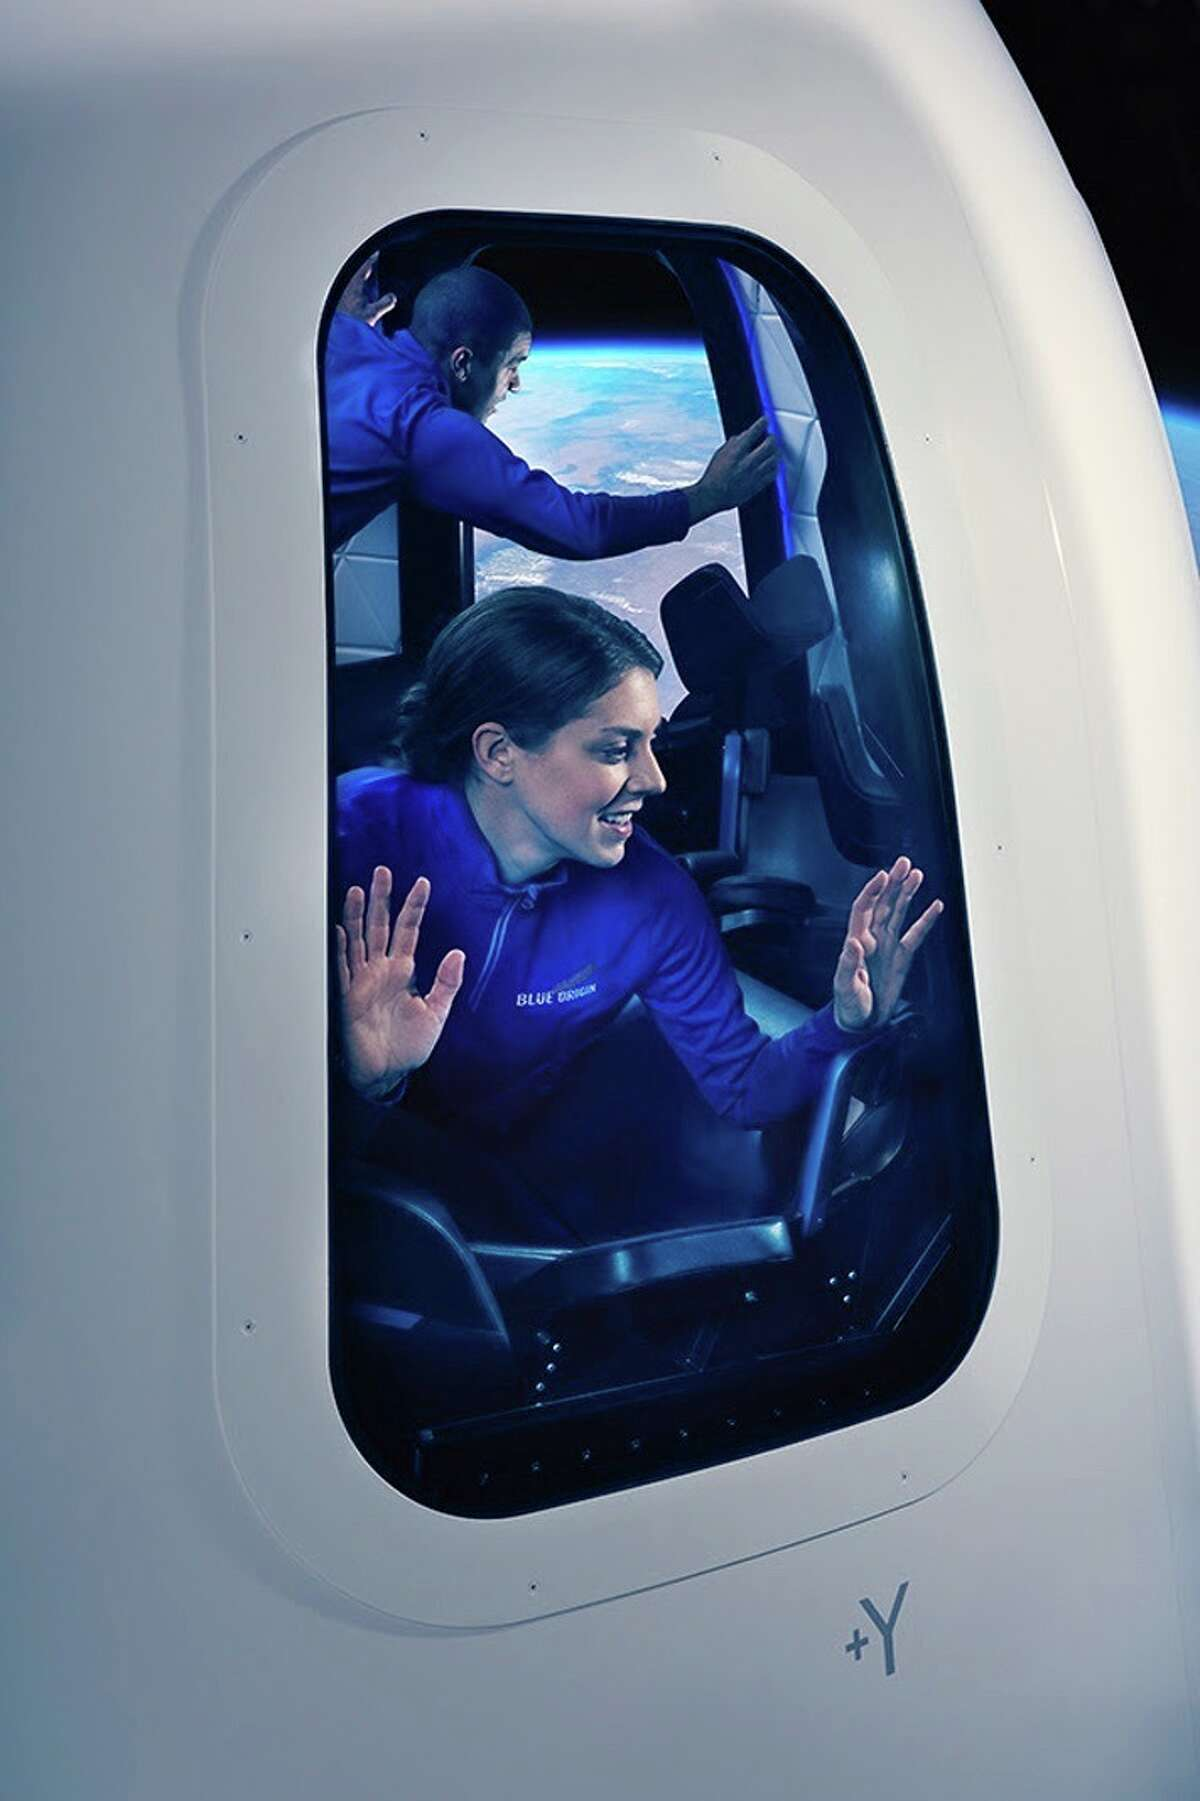 Blue Origin, Amazon CEO Jeff Bezos' rocket company that plans to take tourists into space, released images of its capsule, complete with giant windows and plenty of room for its passengers.